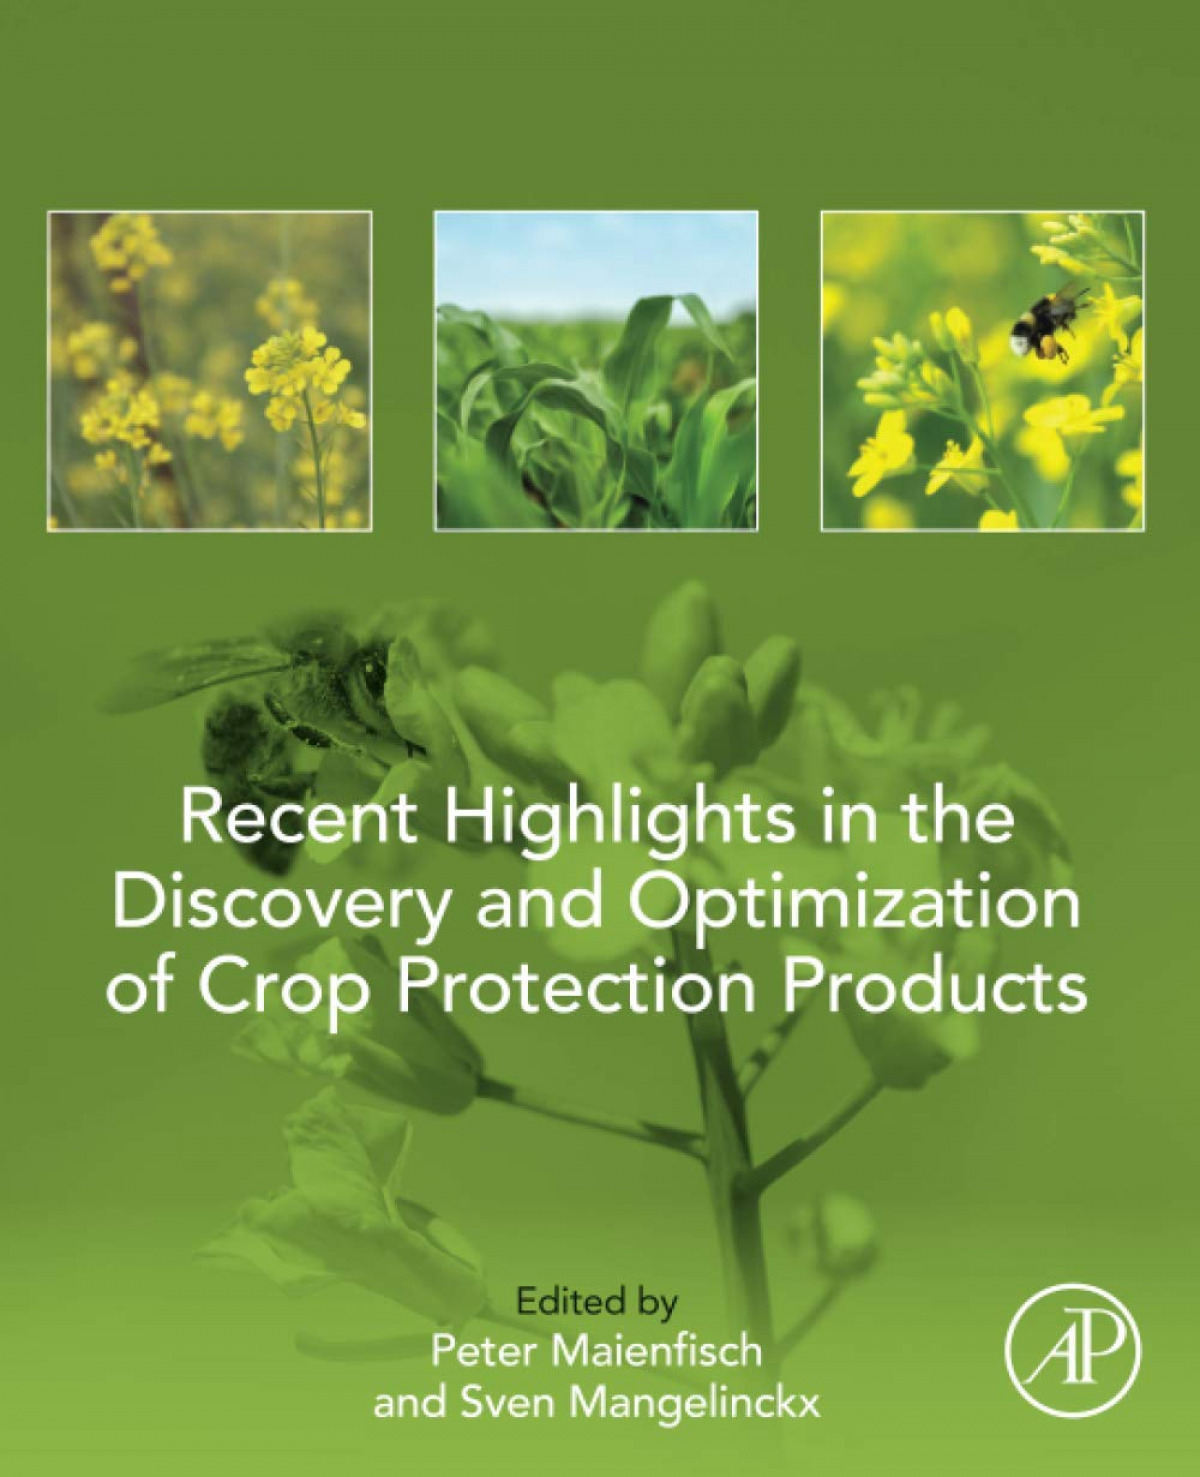 RECENT HIGHLIGHTS DISCOVERY OPTIMIZATION CROP PROTECTION